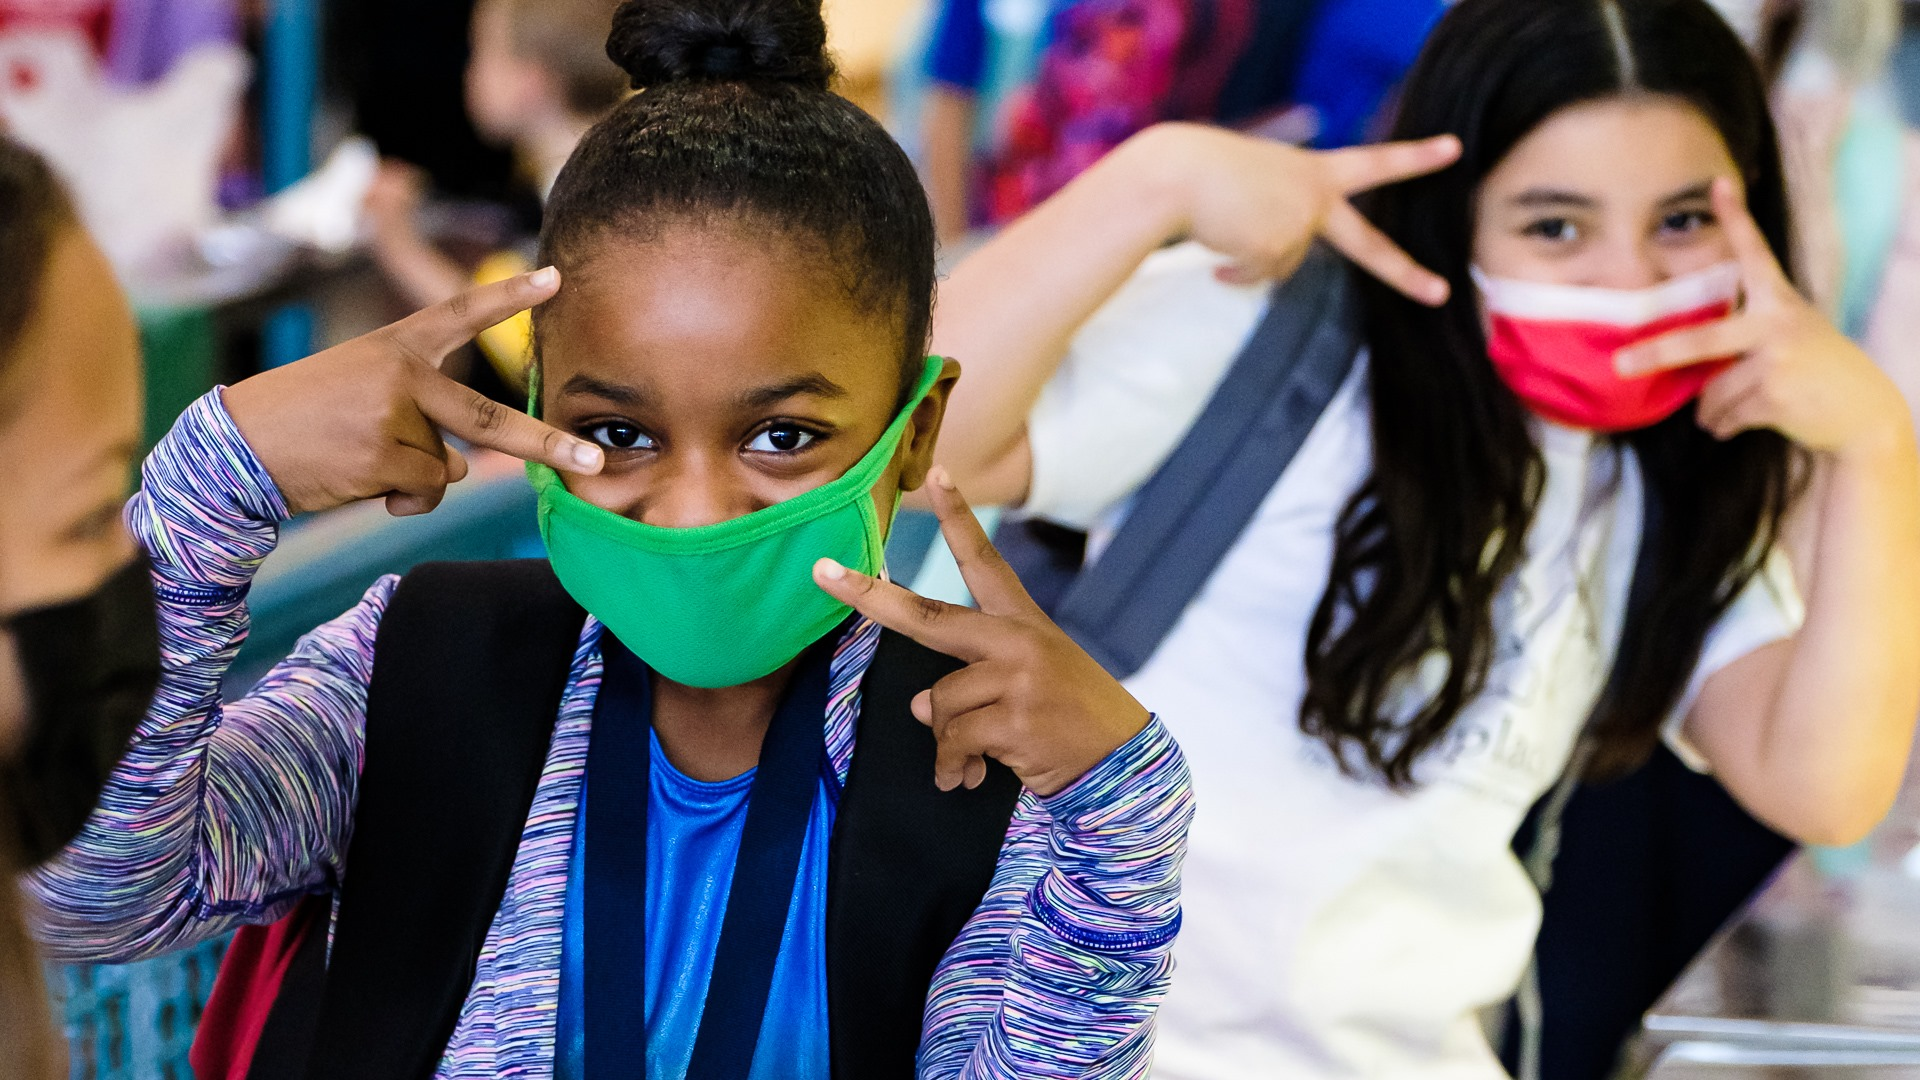 WCSS Holly Spring Elementary School kids peace signs and wearing masks